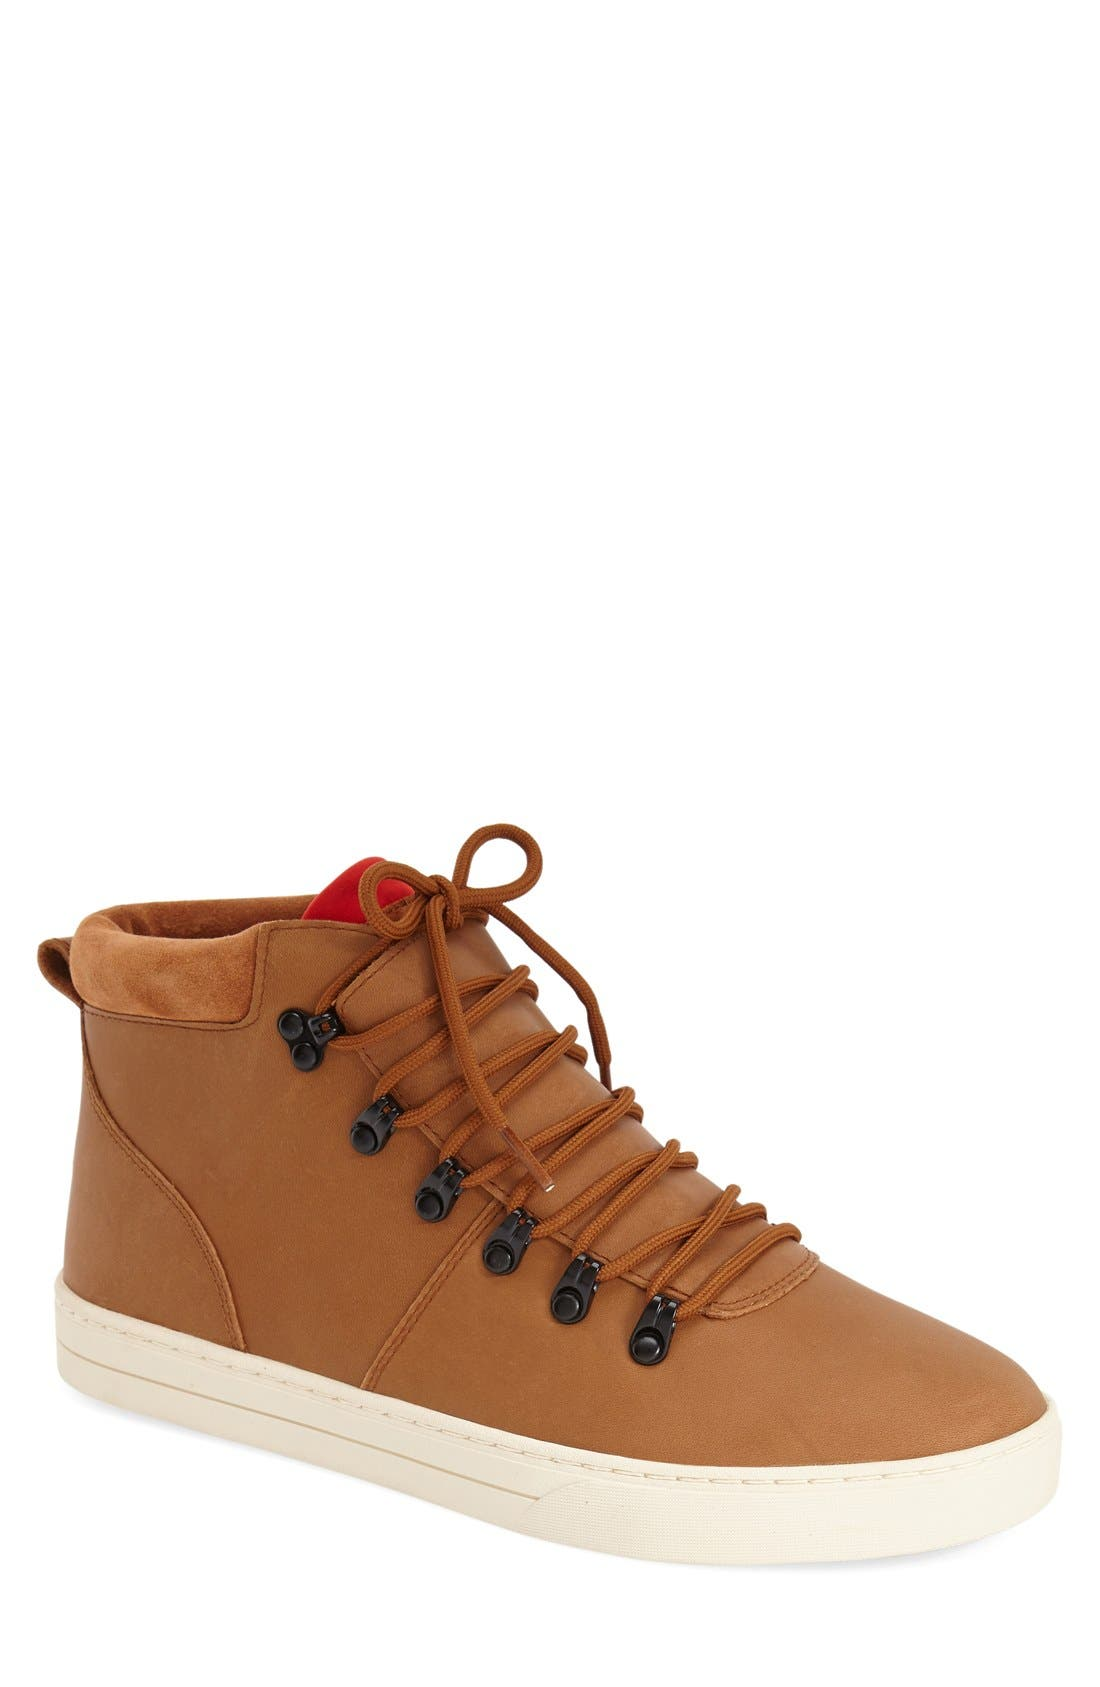 'Grant' Sneaker Boot, Main, color, 234